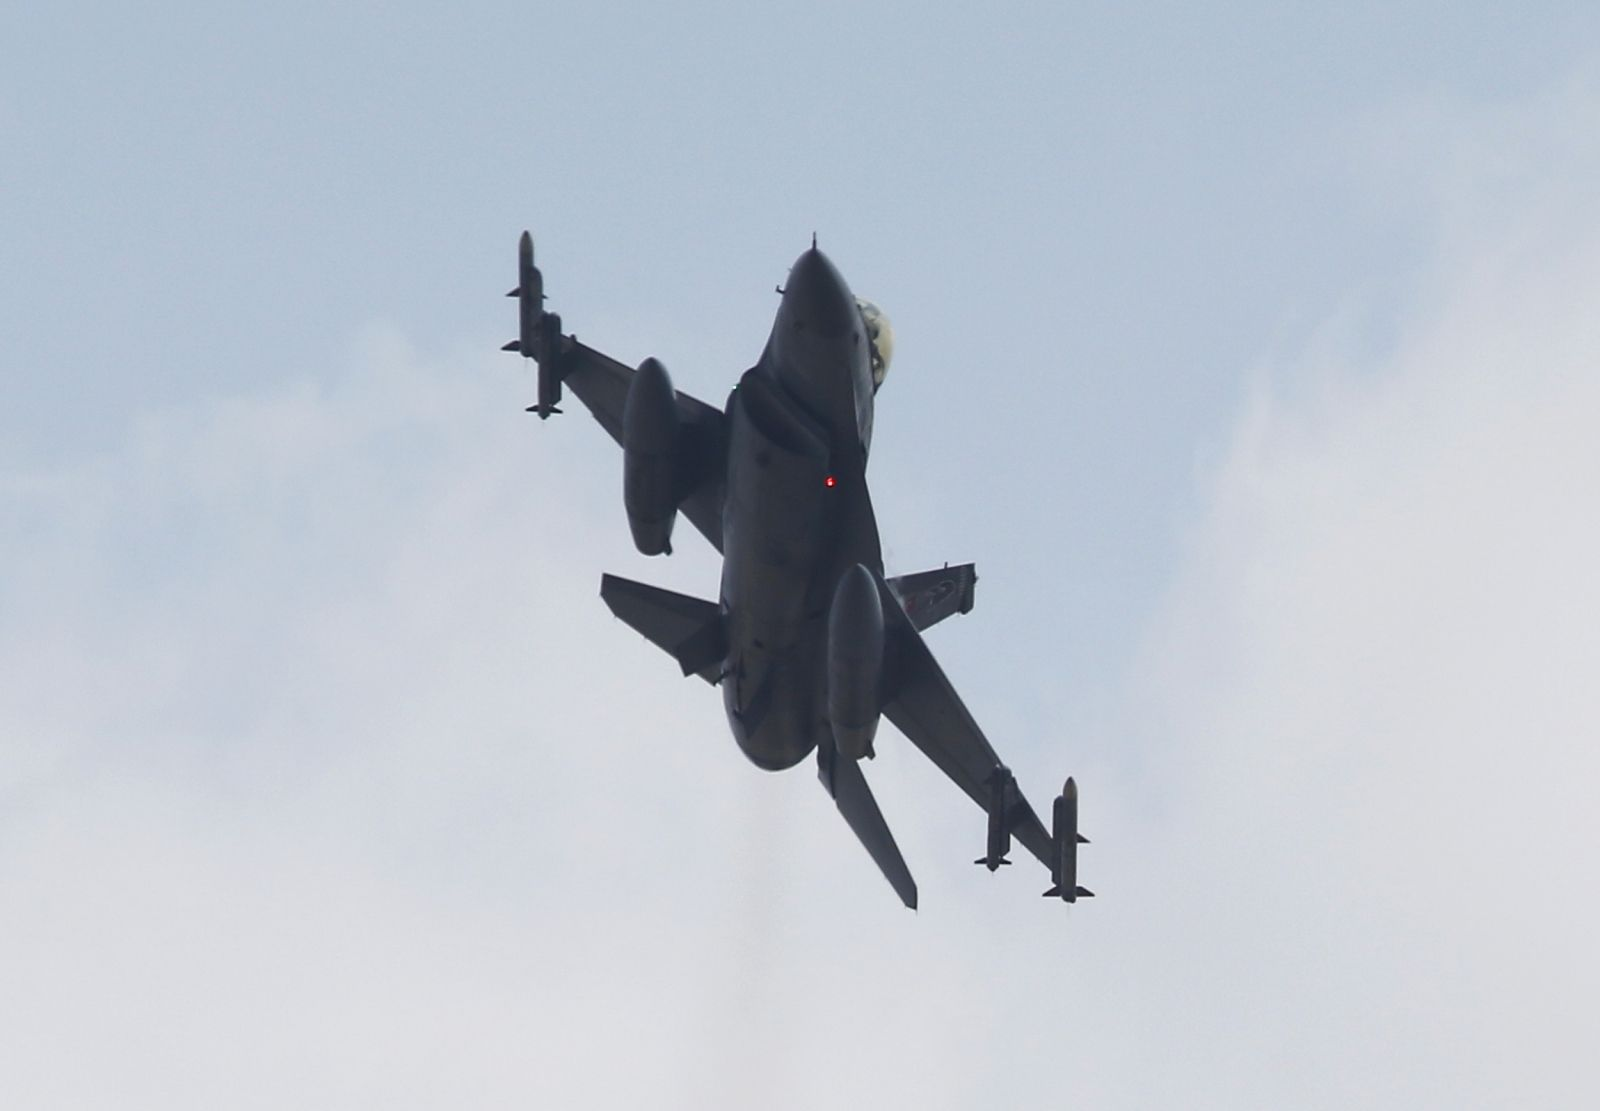 Turkey launches PKK airstrikes